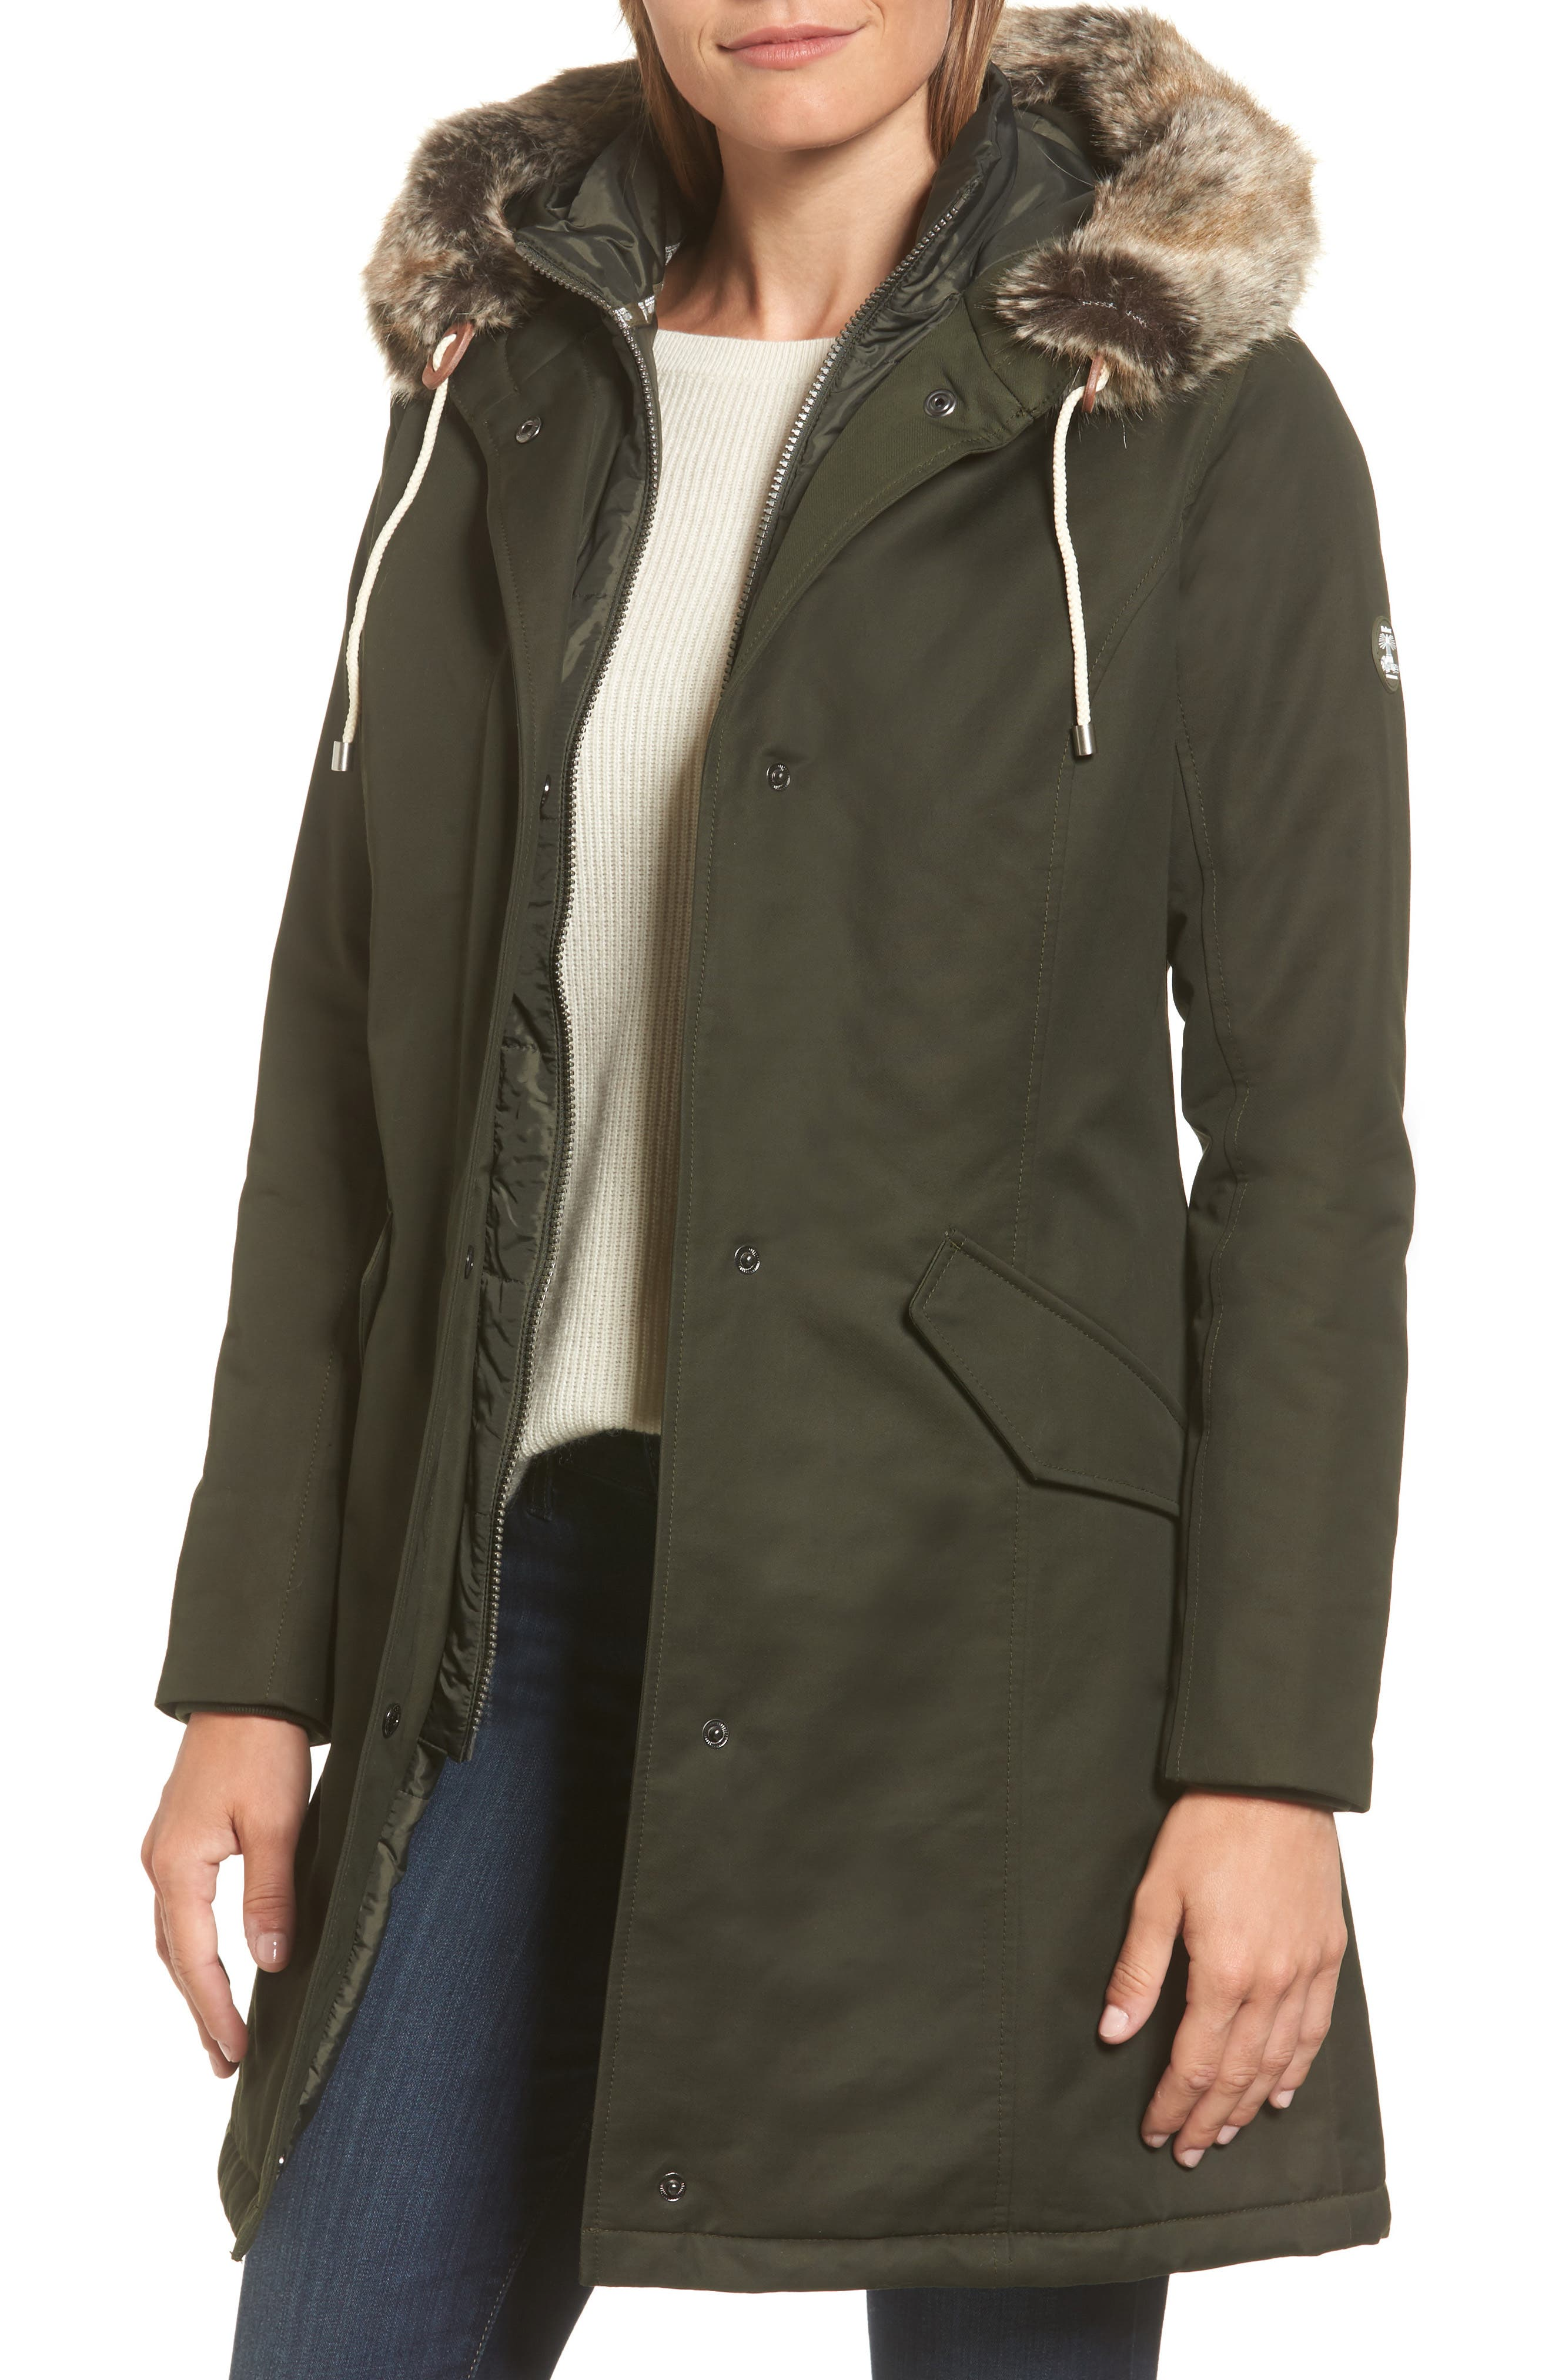 Filey Waterproof Hooded Jacket with Faux Fur Trim,                             Main thumbnail 1, color,                             302